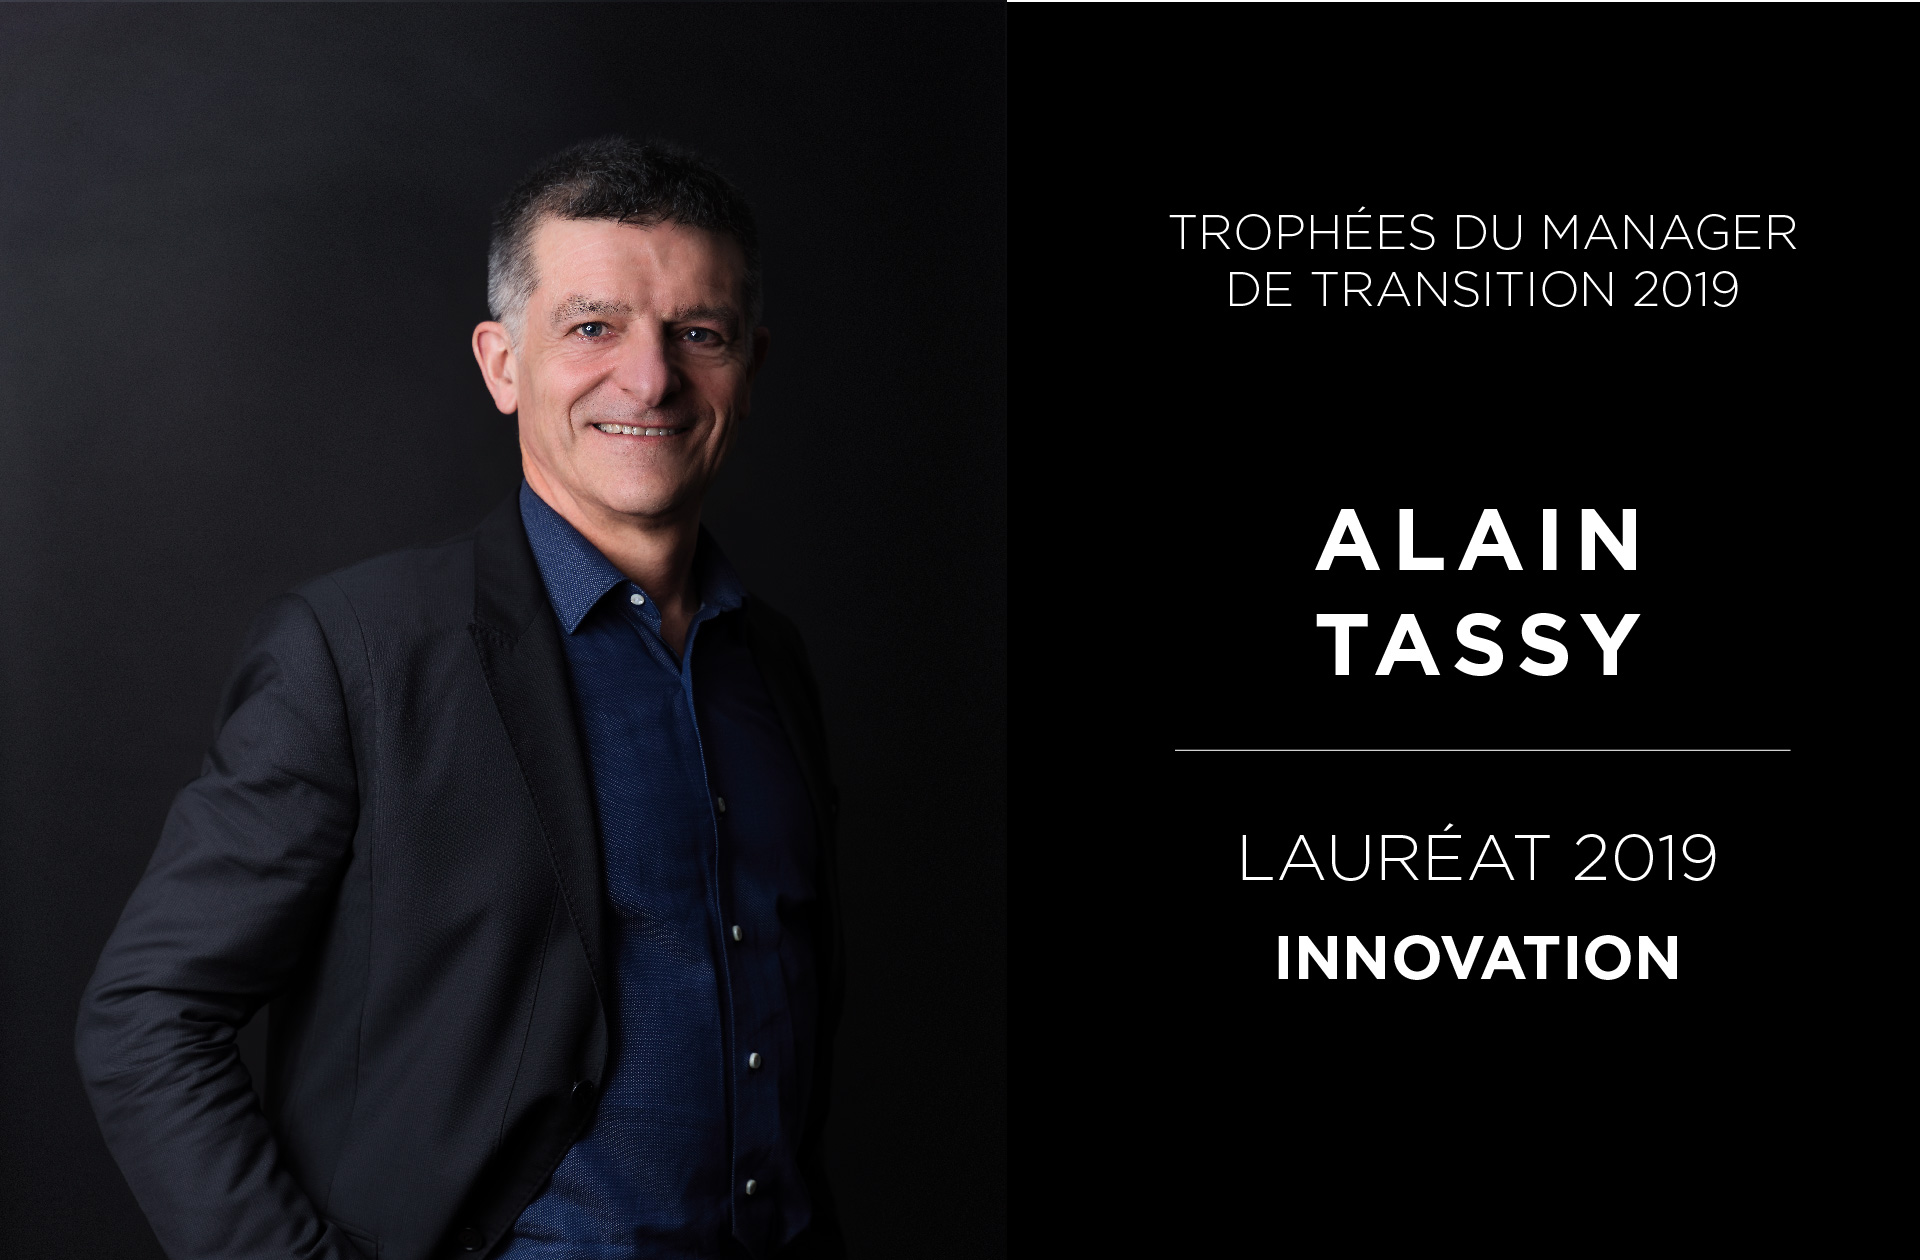 Portrait Alain Tassy - Trophées du Manager de Transition 2019 - Valtus Management de transition